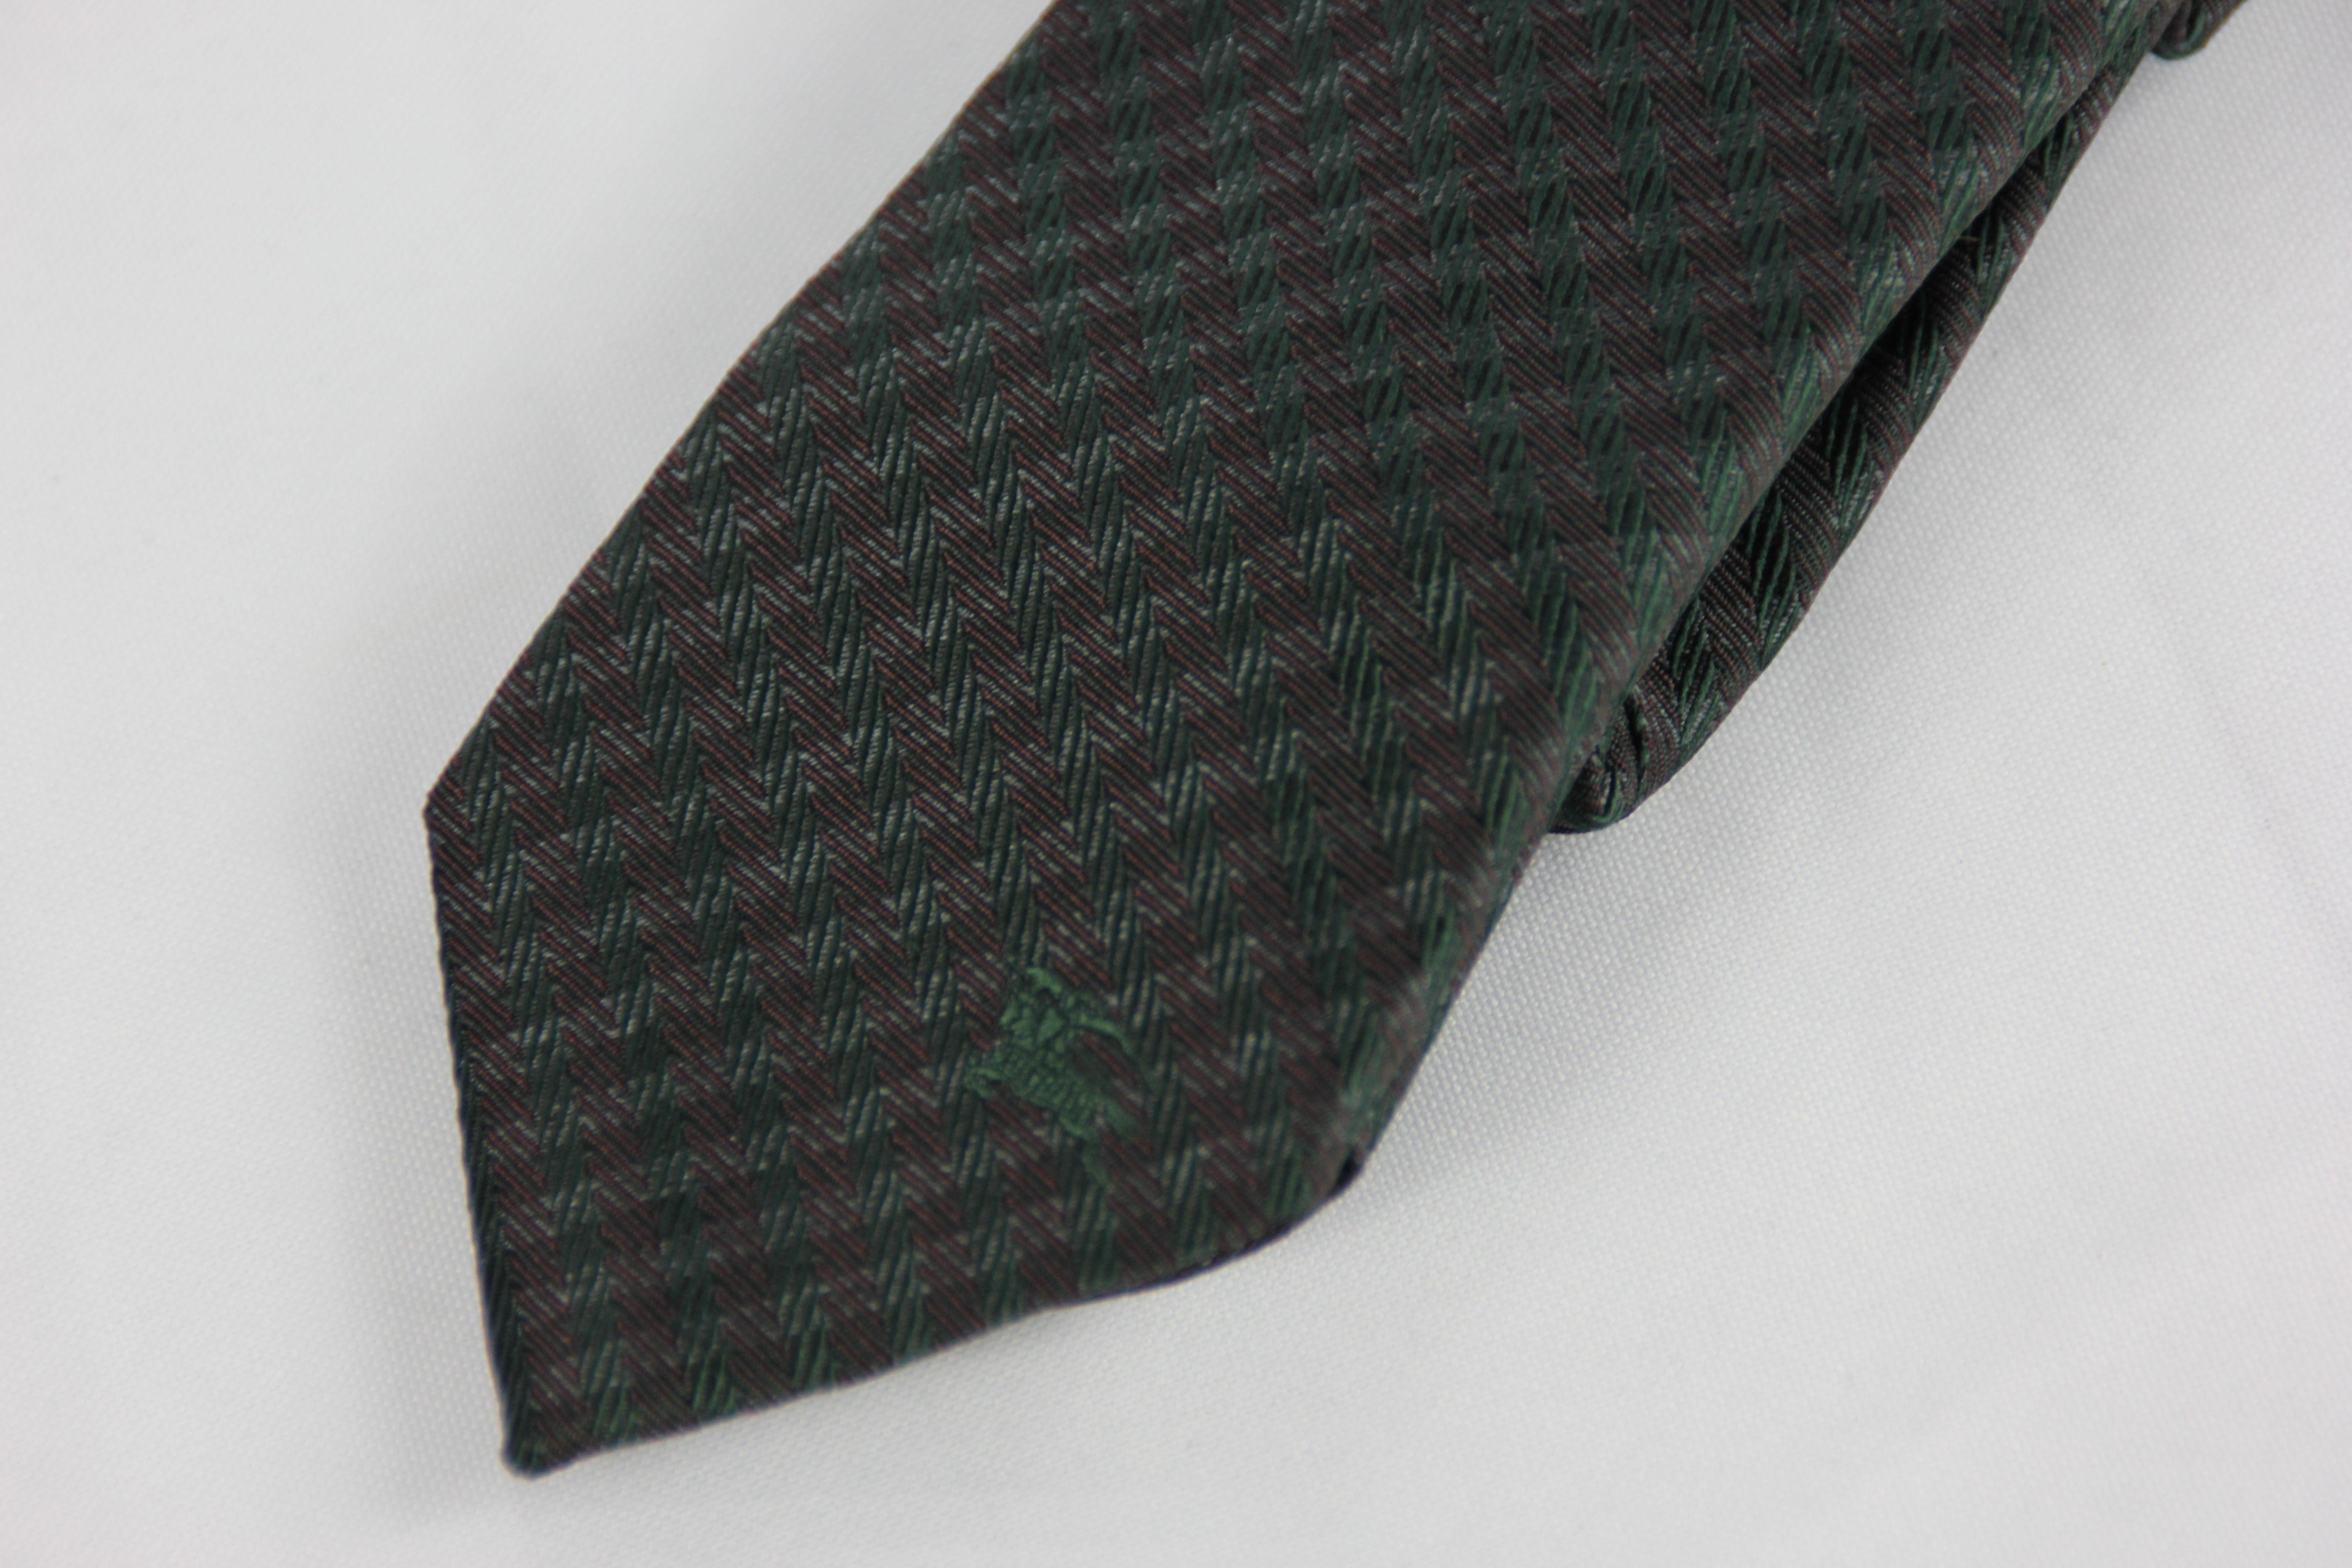 black and white burberry tie